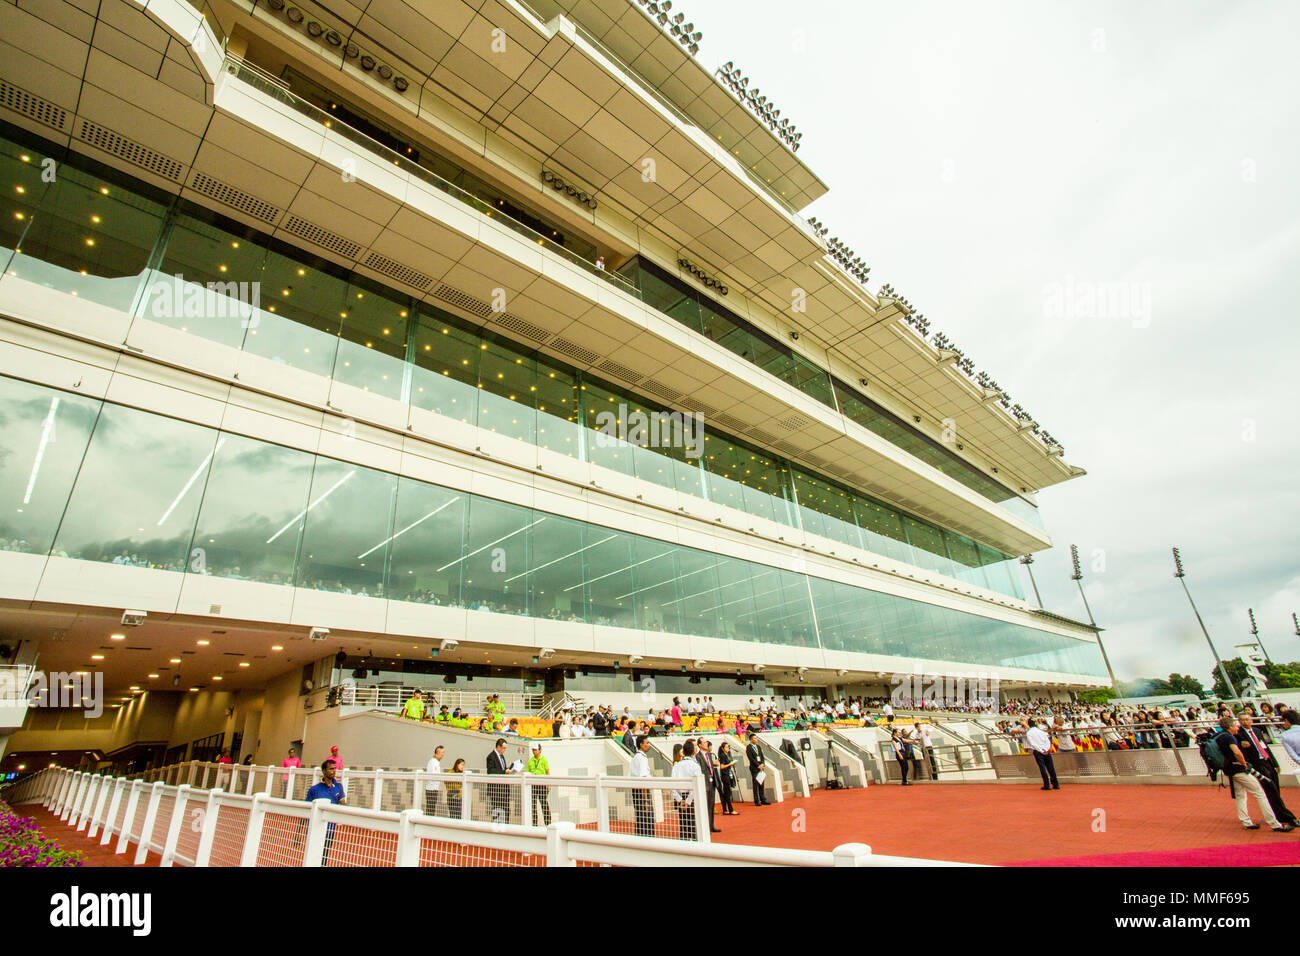 Singapore/Singapore - November 16, 2014: The Longines Gold Cup racing at the Kranji circuit in Singapore. The grandstand. Stock Photo